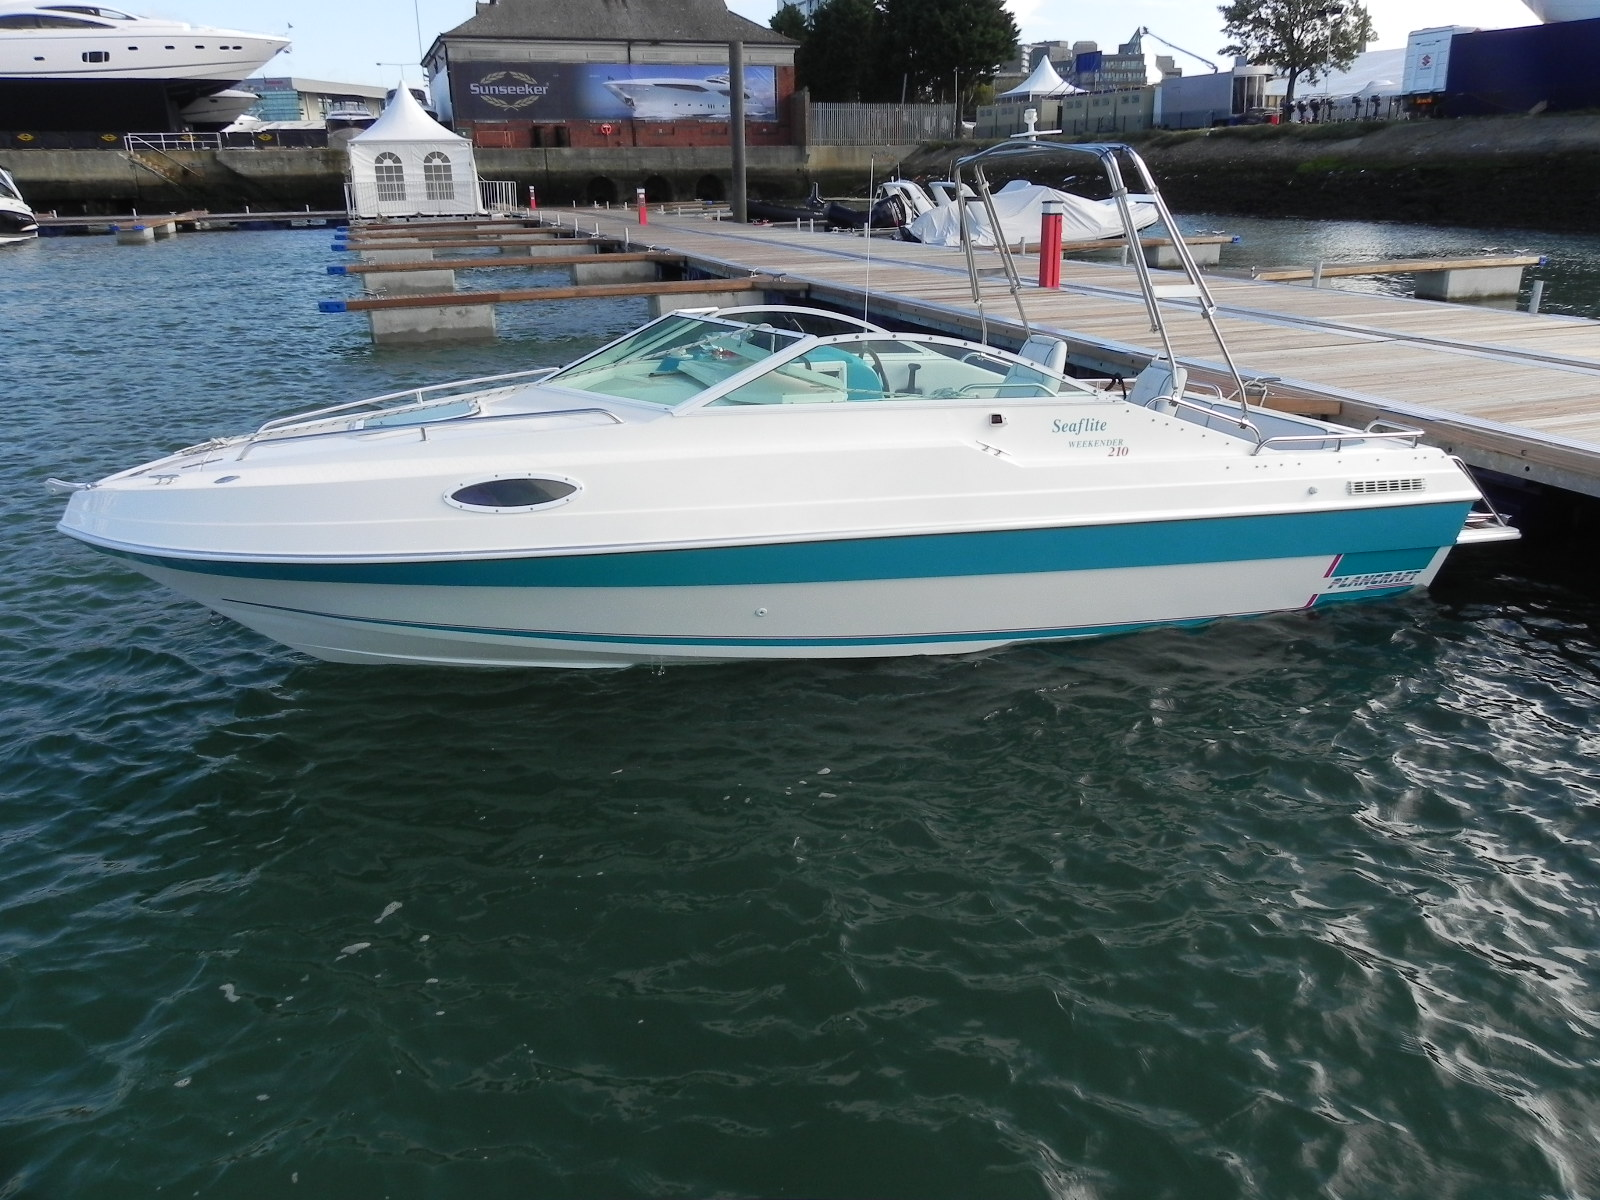 Plancraft Seaflite Weekender 21 Ft Power Boat With Large Cabin